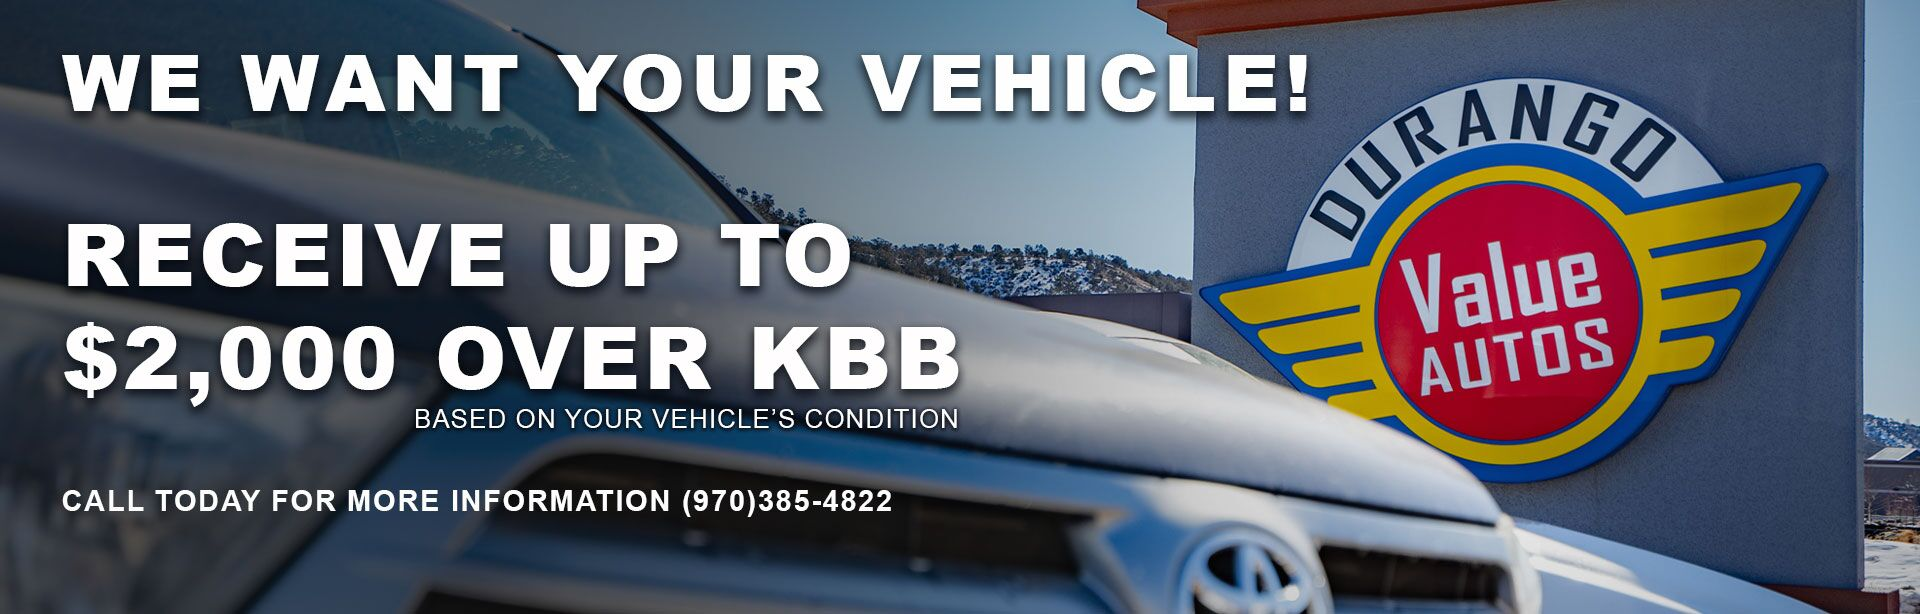 We Want Your Vehicle - $2K over KBB